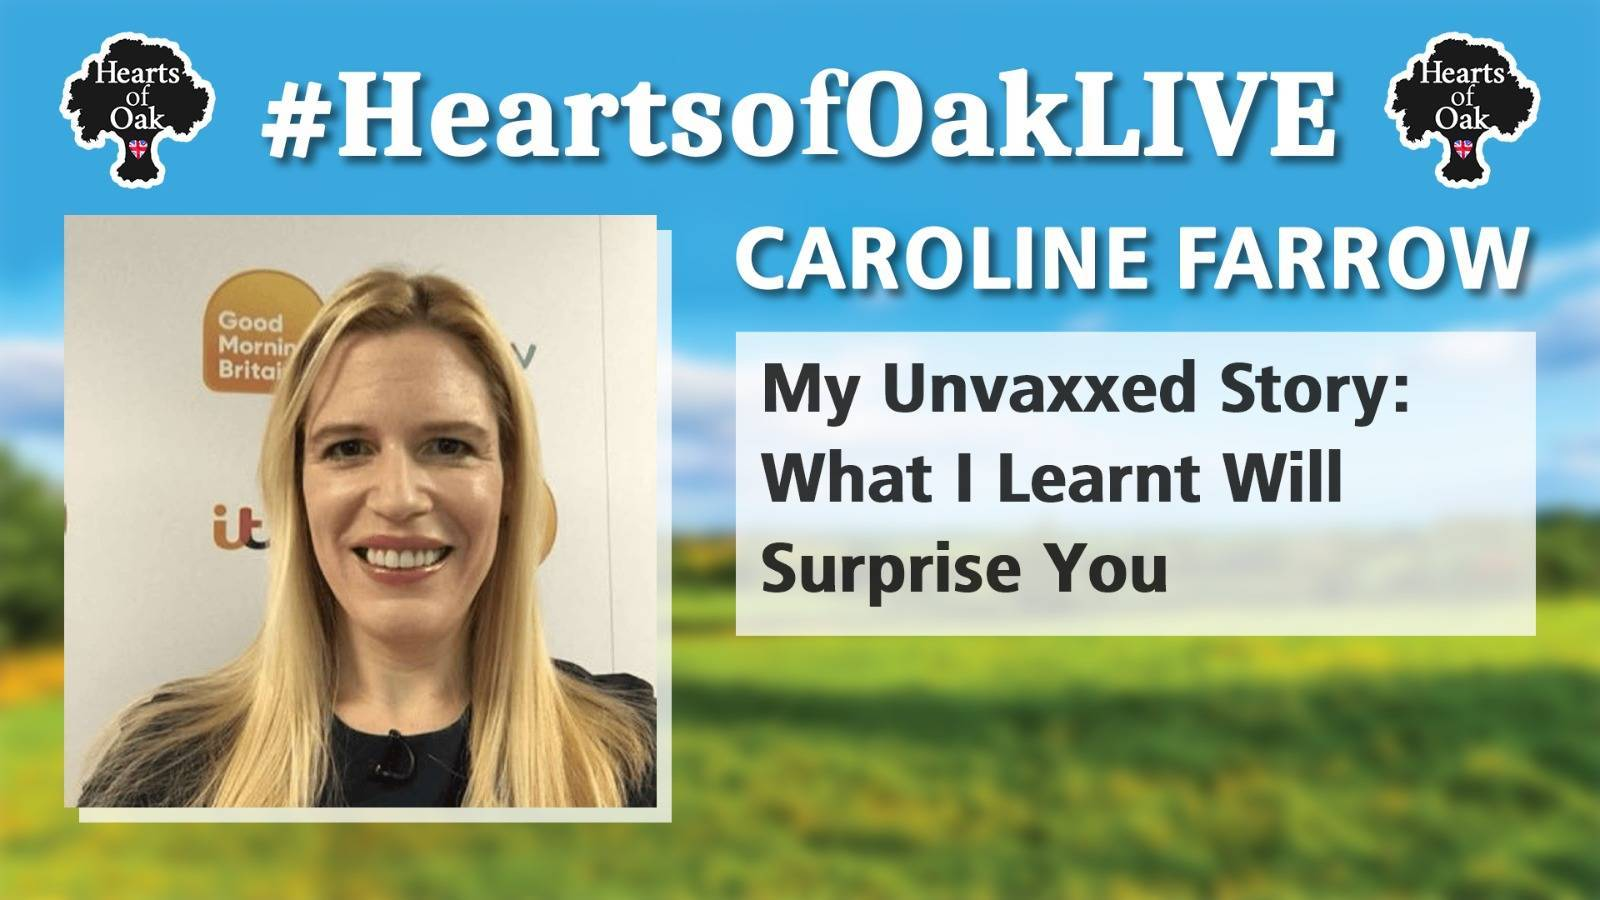 Caroline Farrow: My Unvaxxed Story - What I learnt will Surprise You